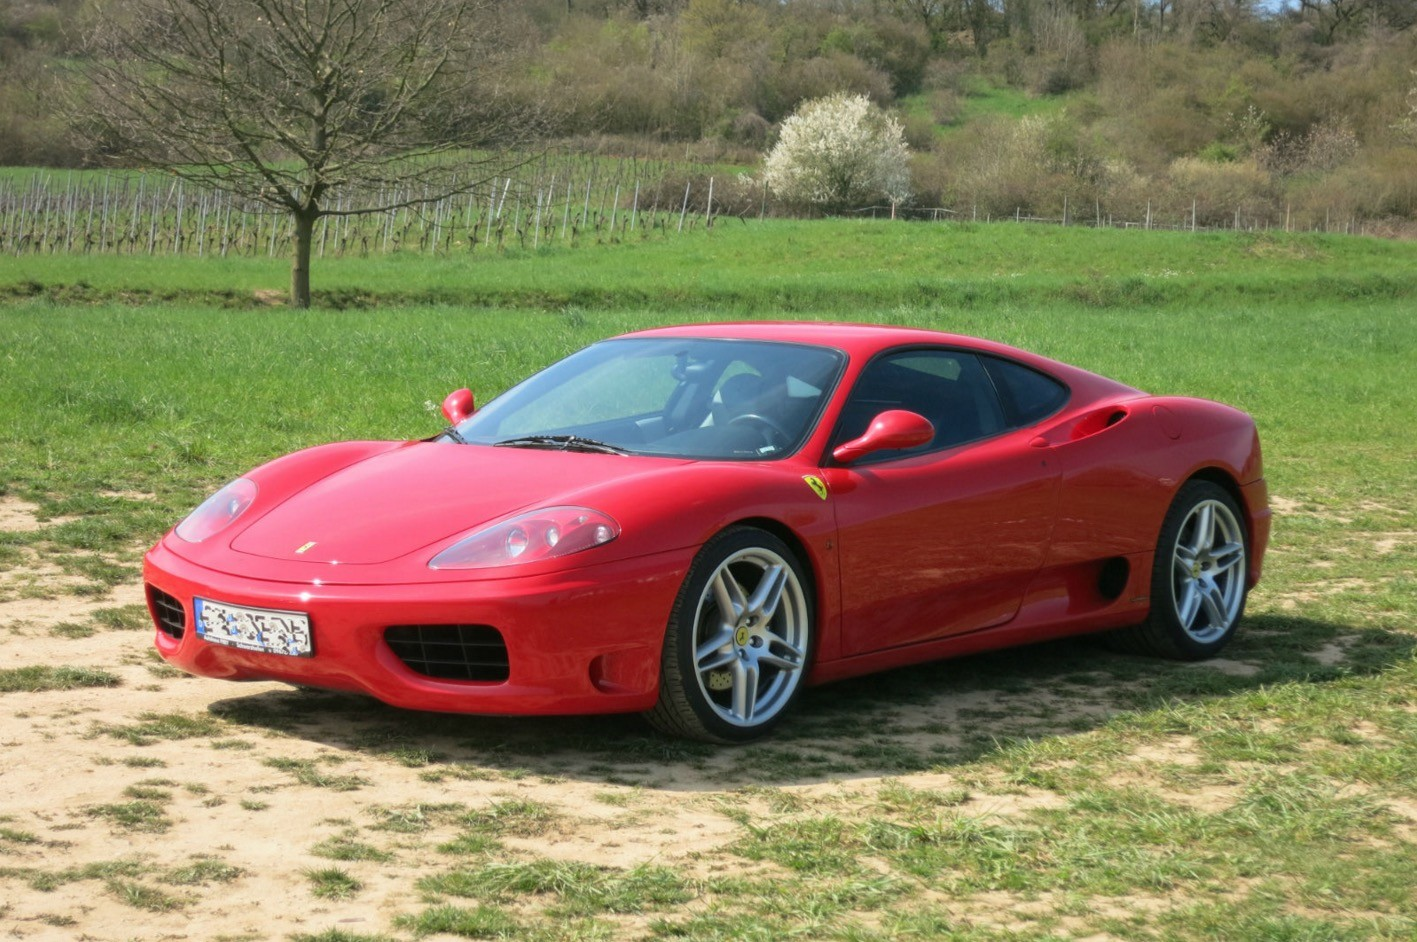 Ferrari 360 Modena F1 Once Owned By Football Player